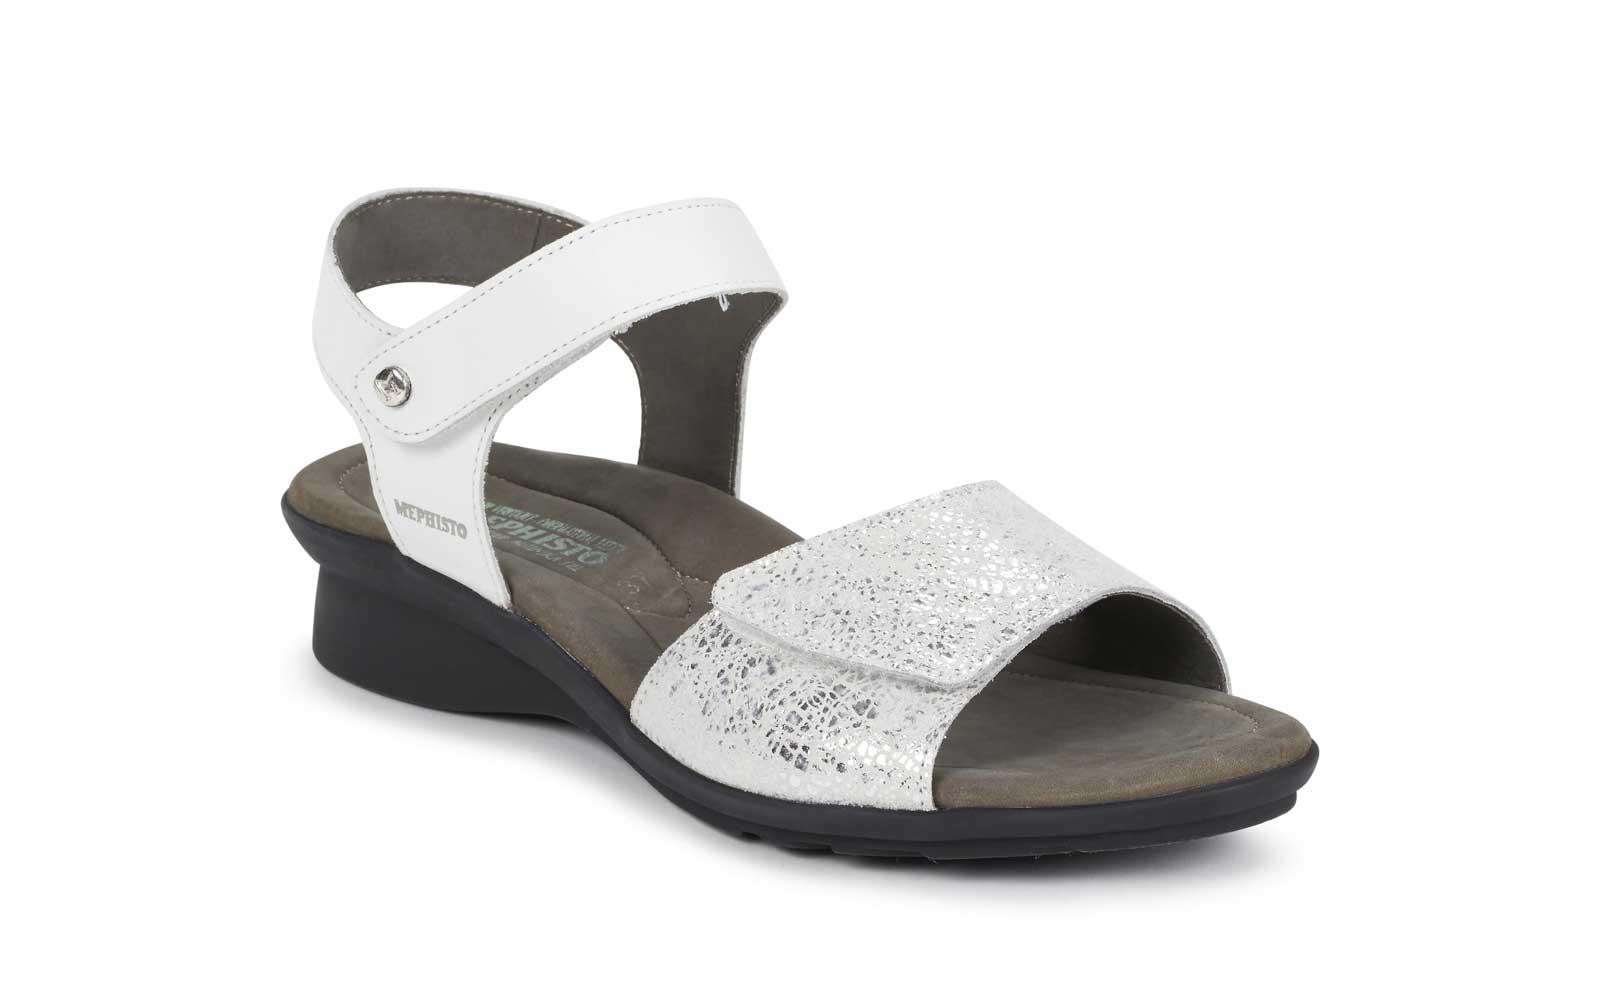 mephisto arch support shoes for women